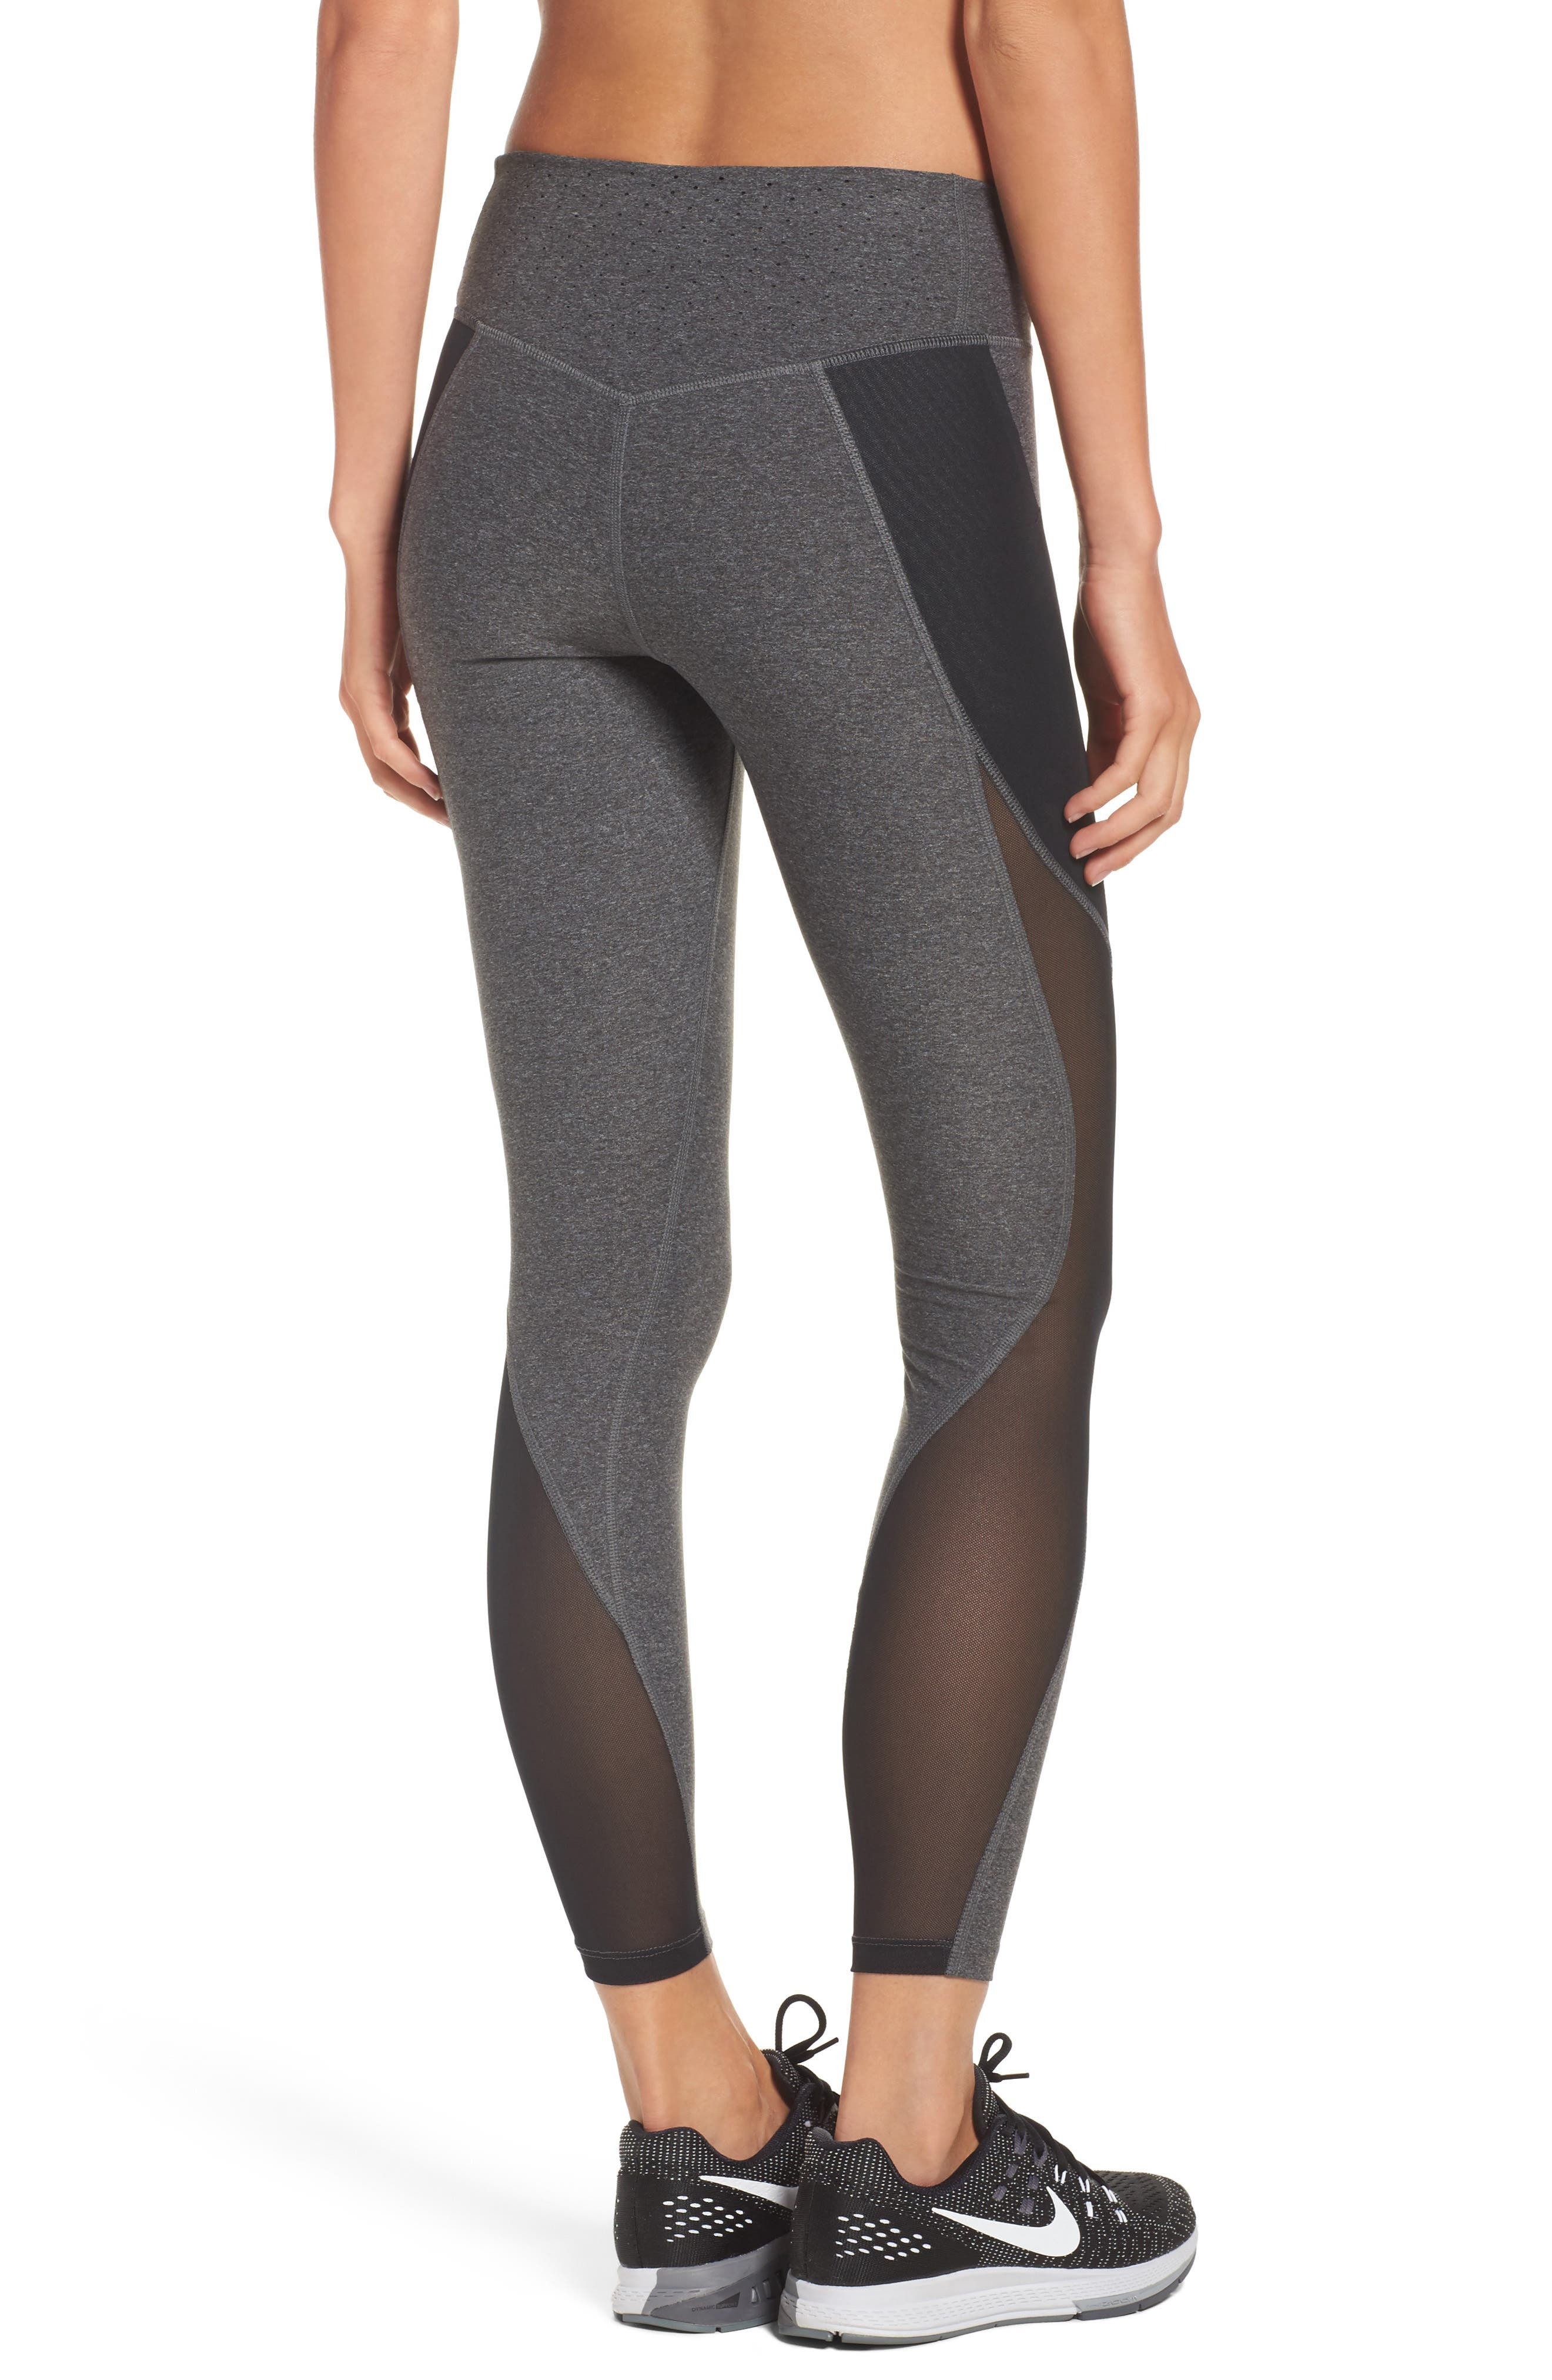 Power Legend Training Tights,                             Alternate thumbnail 2, color,                             Charcoal Heather/ Black/ White